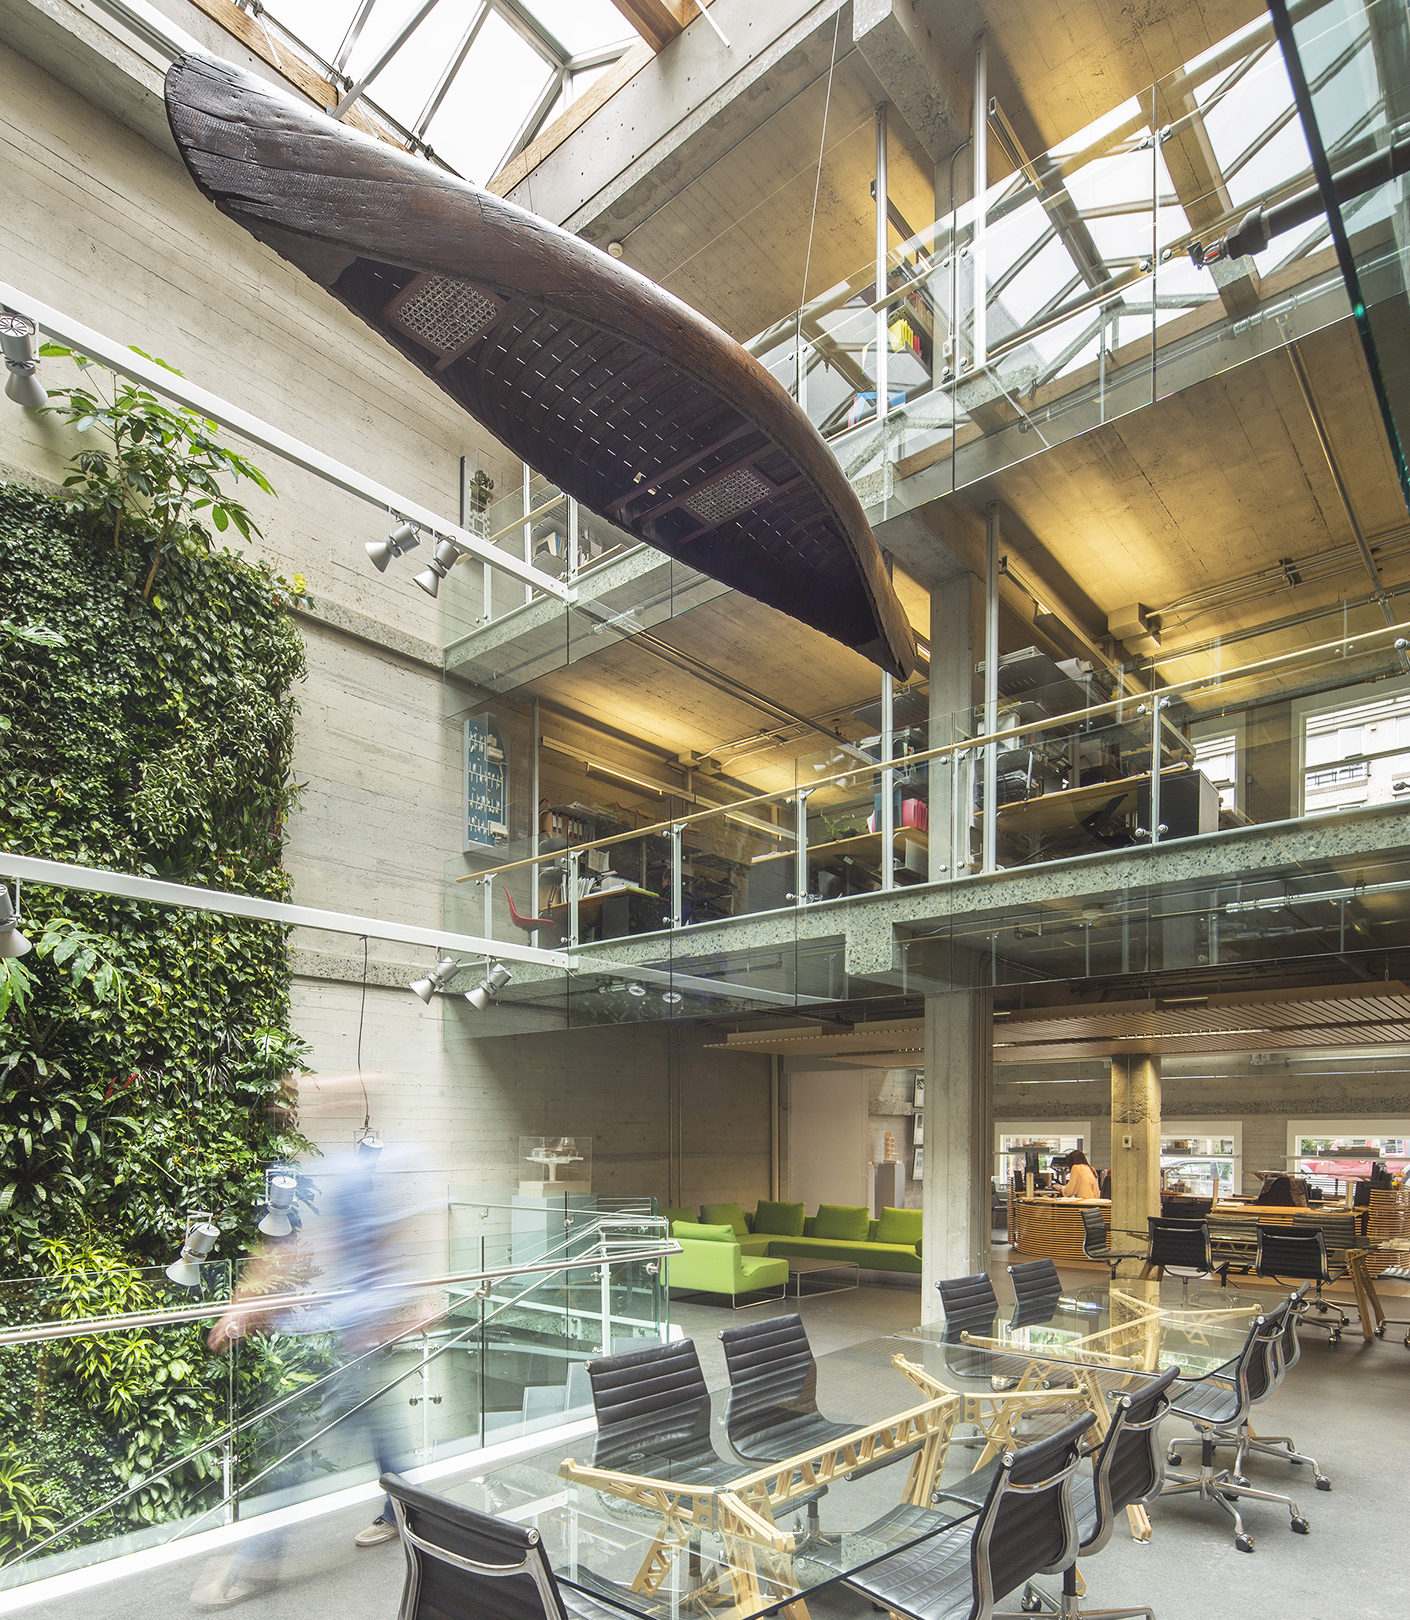 Canoe hanging in atrium of Vancouver studio